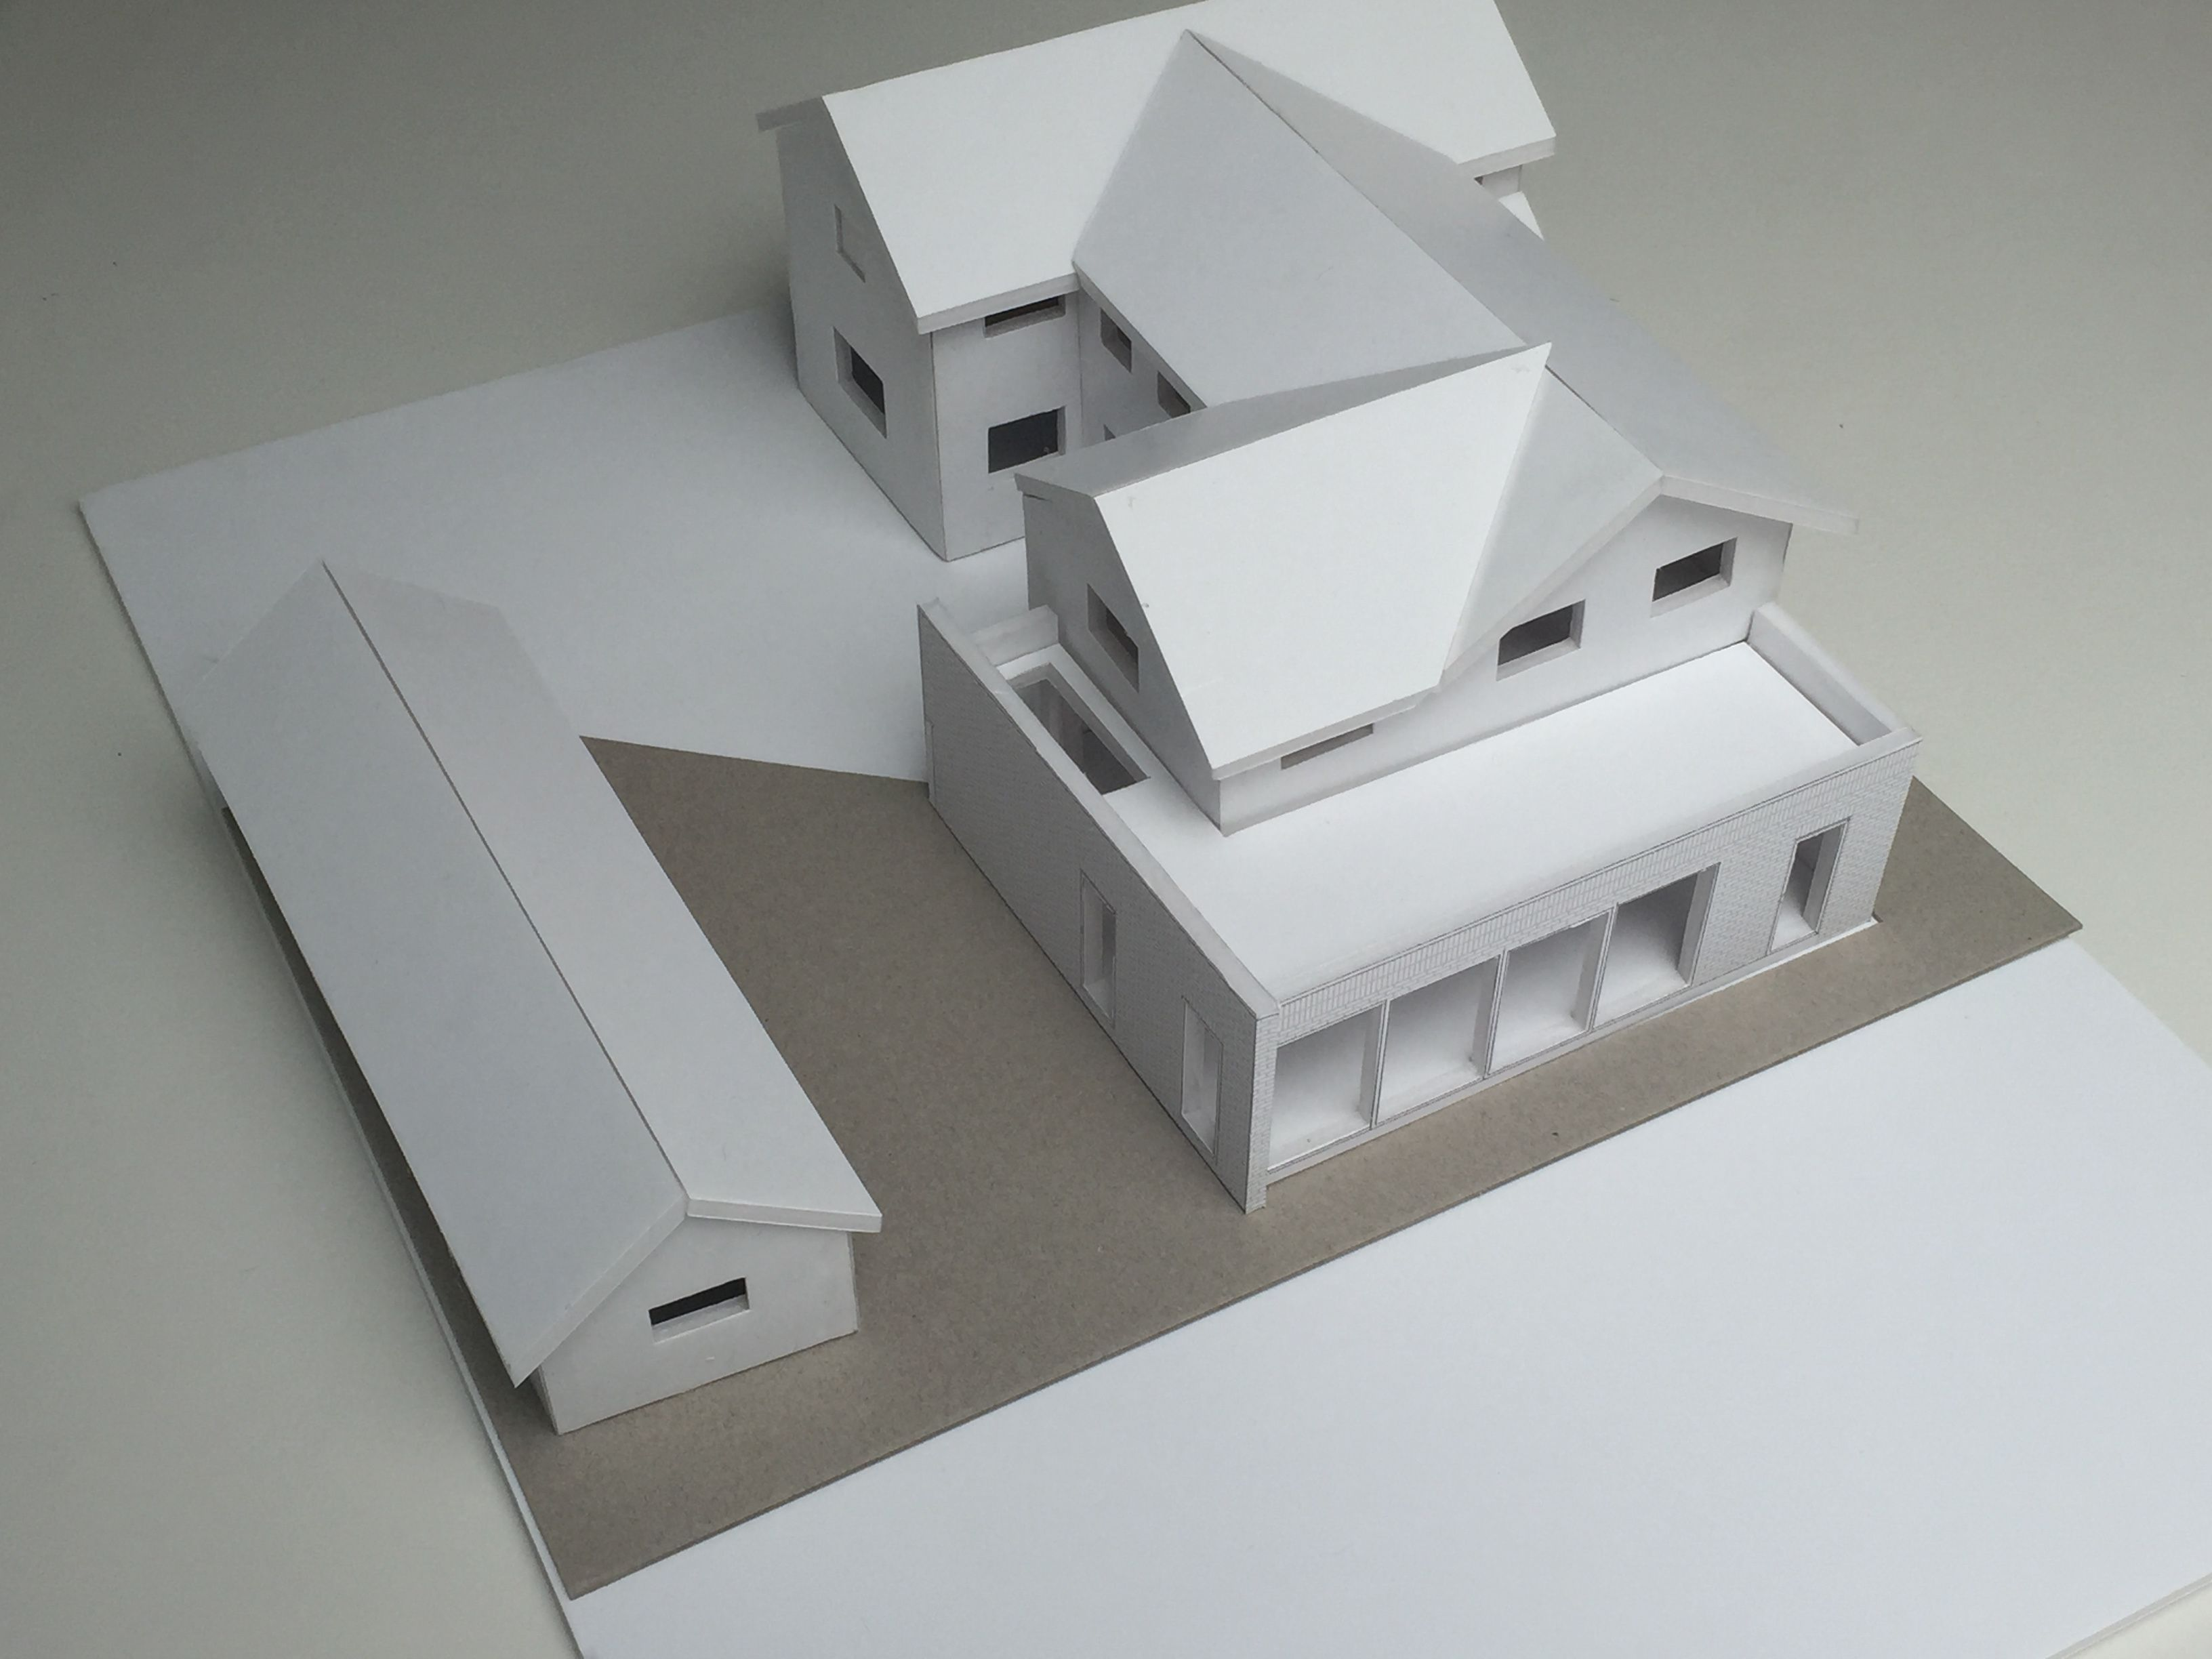 Annabelle Tugby Architects Architectural Foam Board Model Of Single Storey Brick Extension Brick Extension Architecture Architecture Model